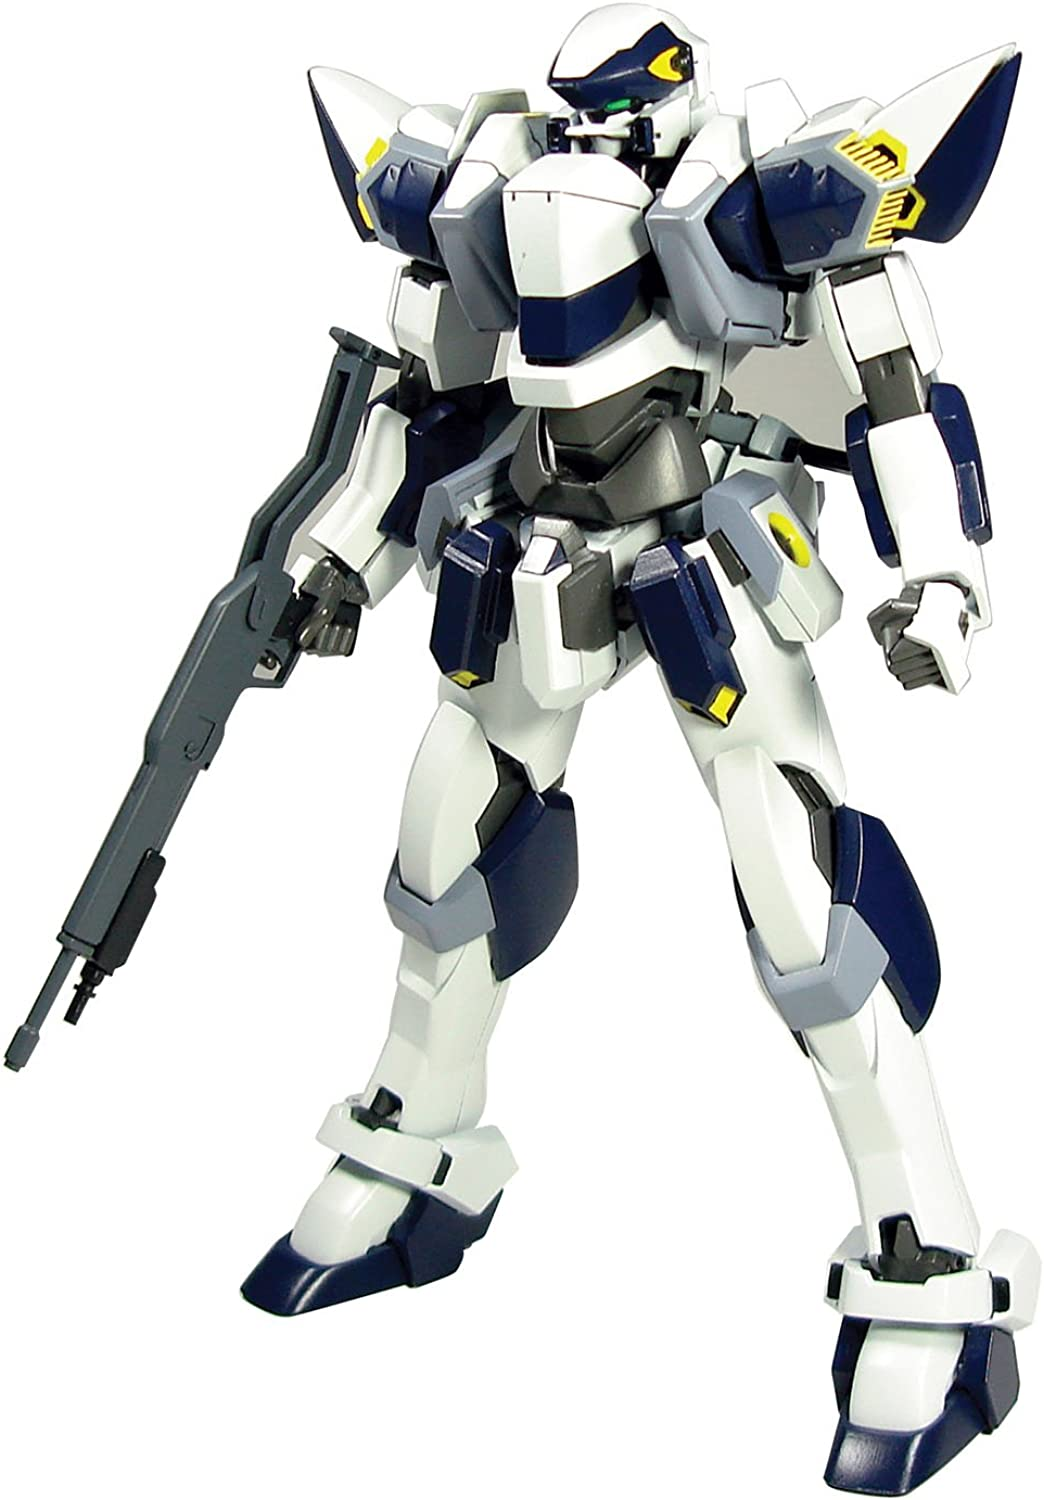 Full Metal Panic  1 48 Scale ARX-7 Arbalest Model Kit